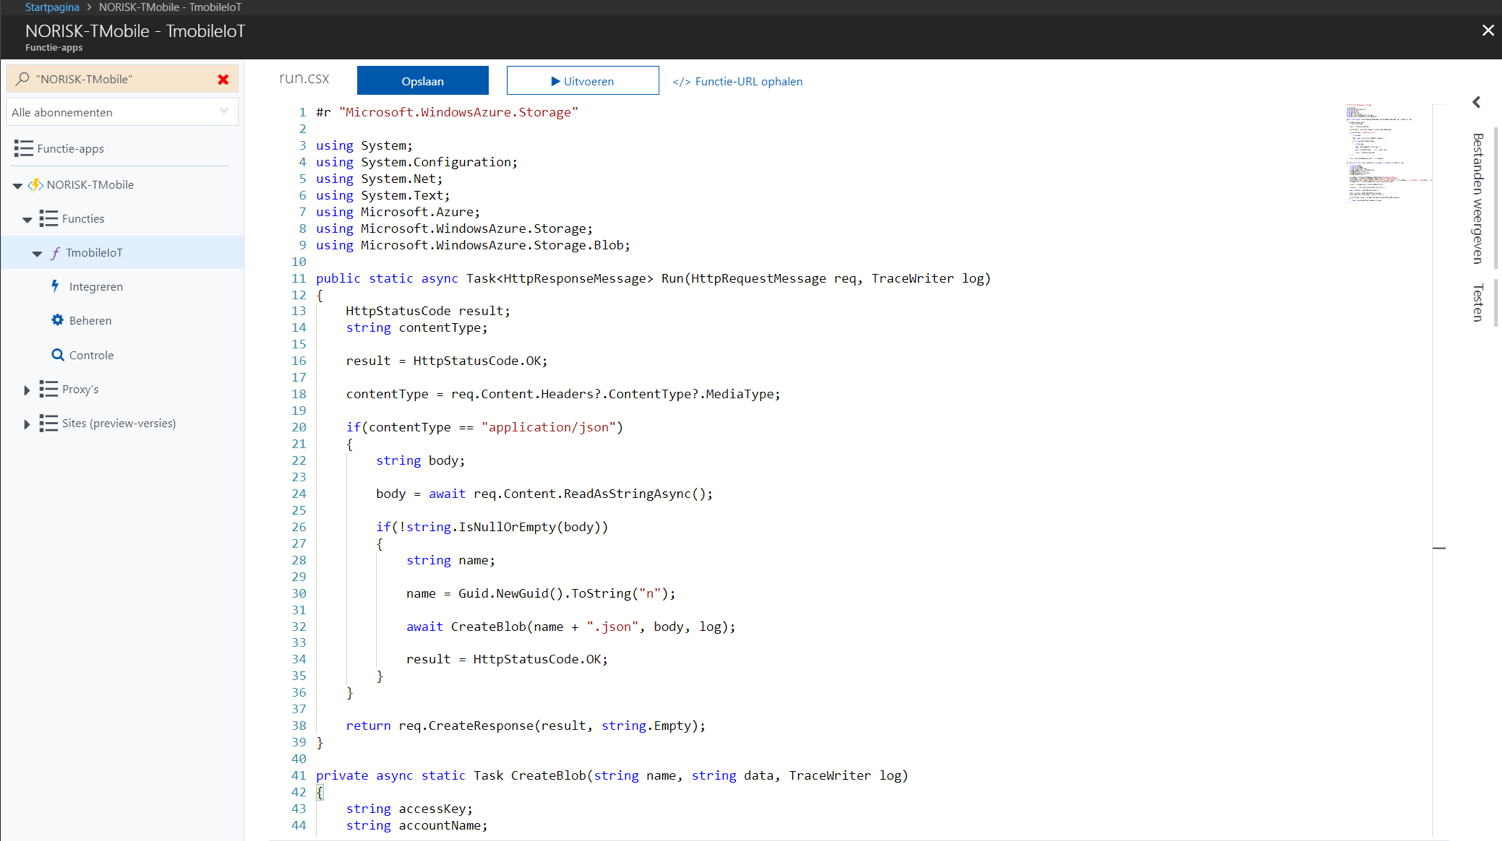 Integration with MS Azure and Power BI